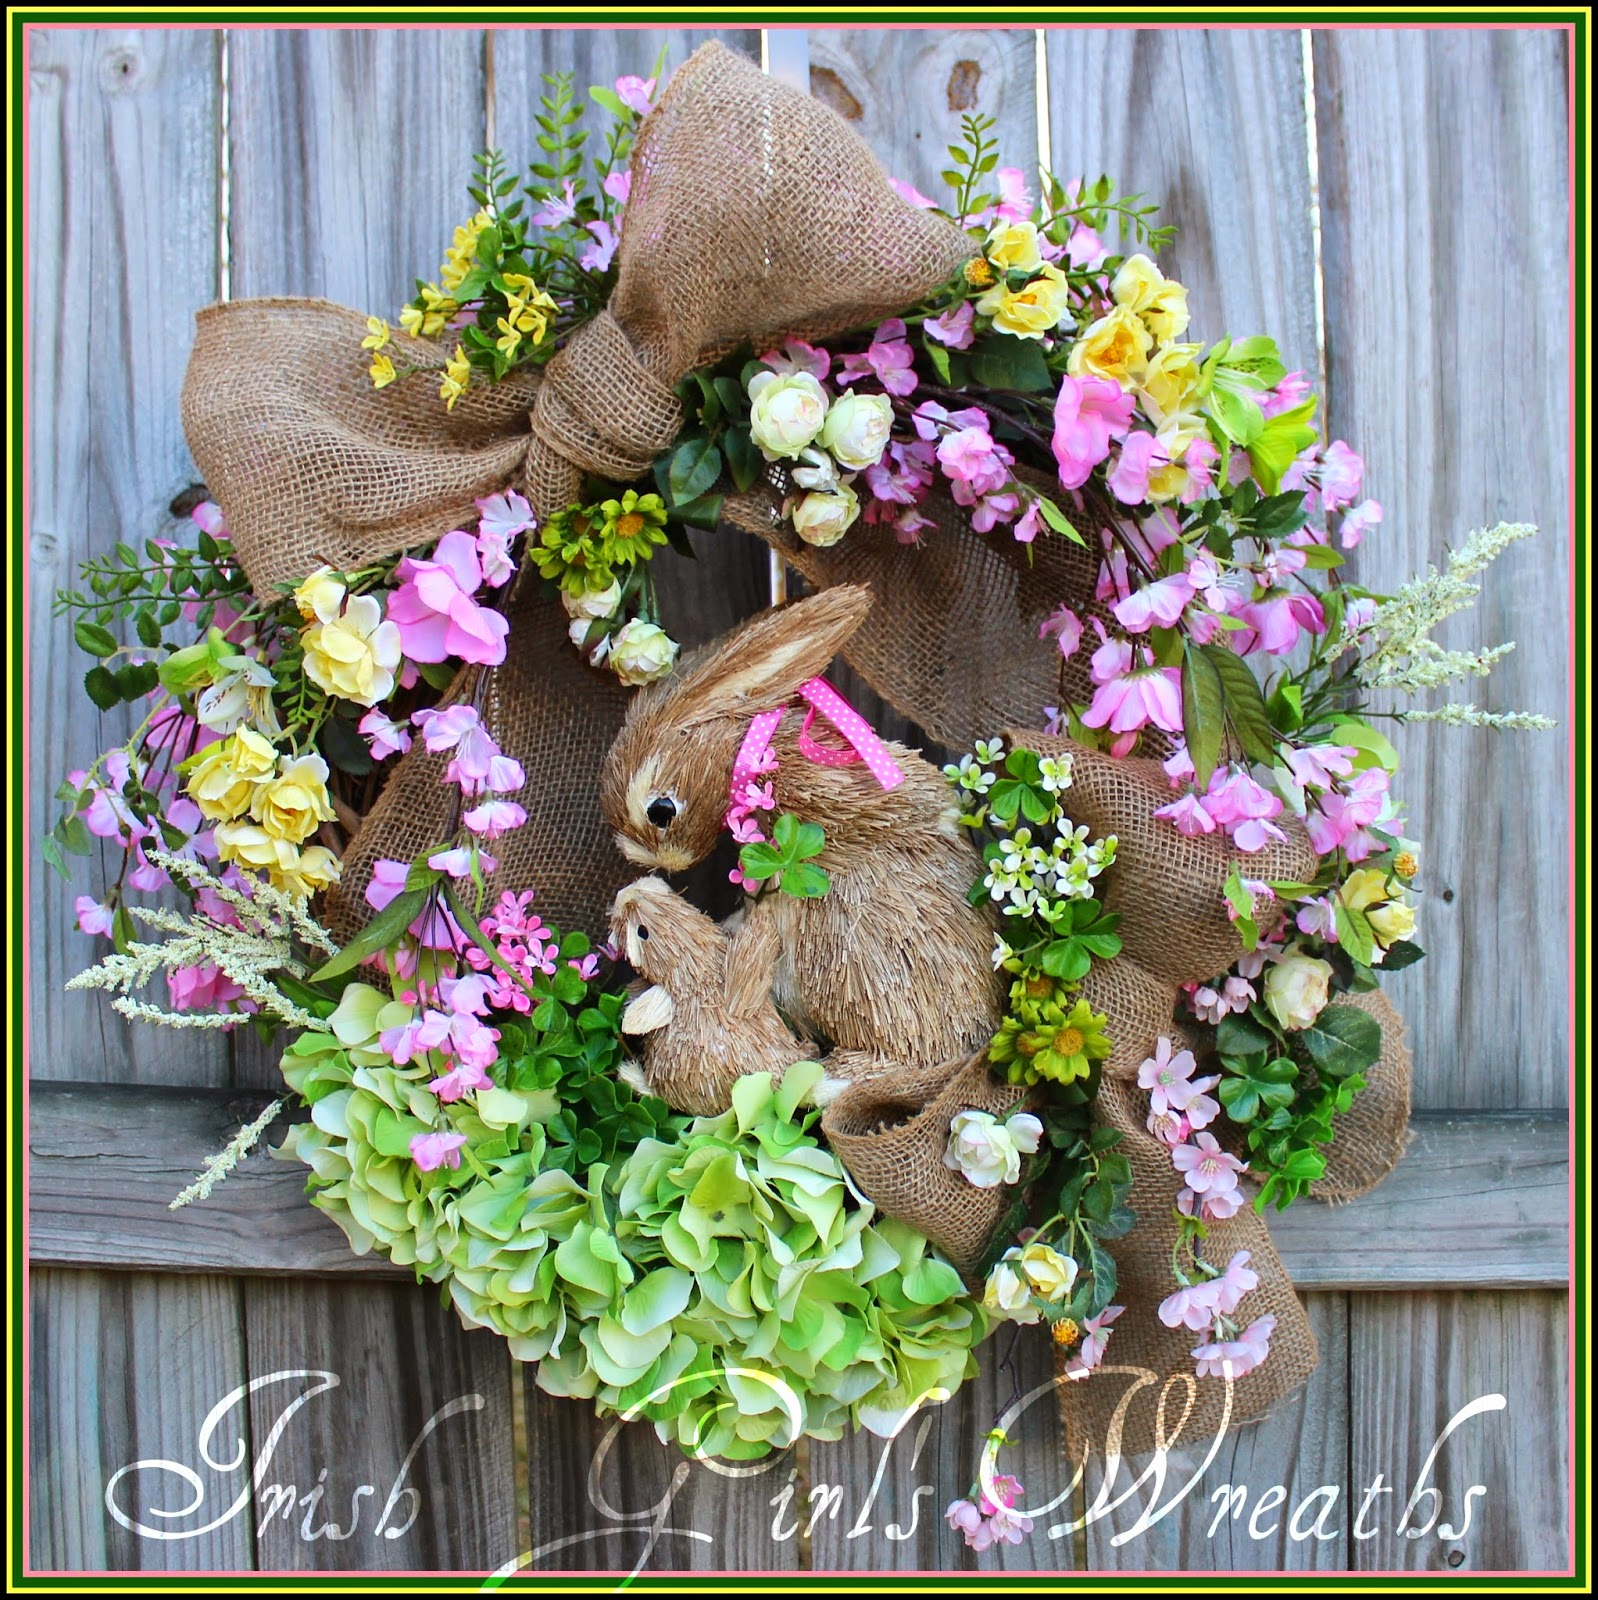 Cherry Blossom and Wild Rose Bunny Rabbit Spring Wreath, mother & baby, Easter